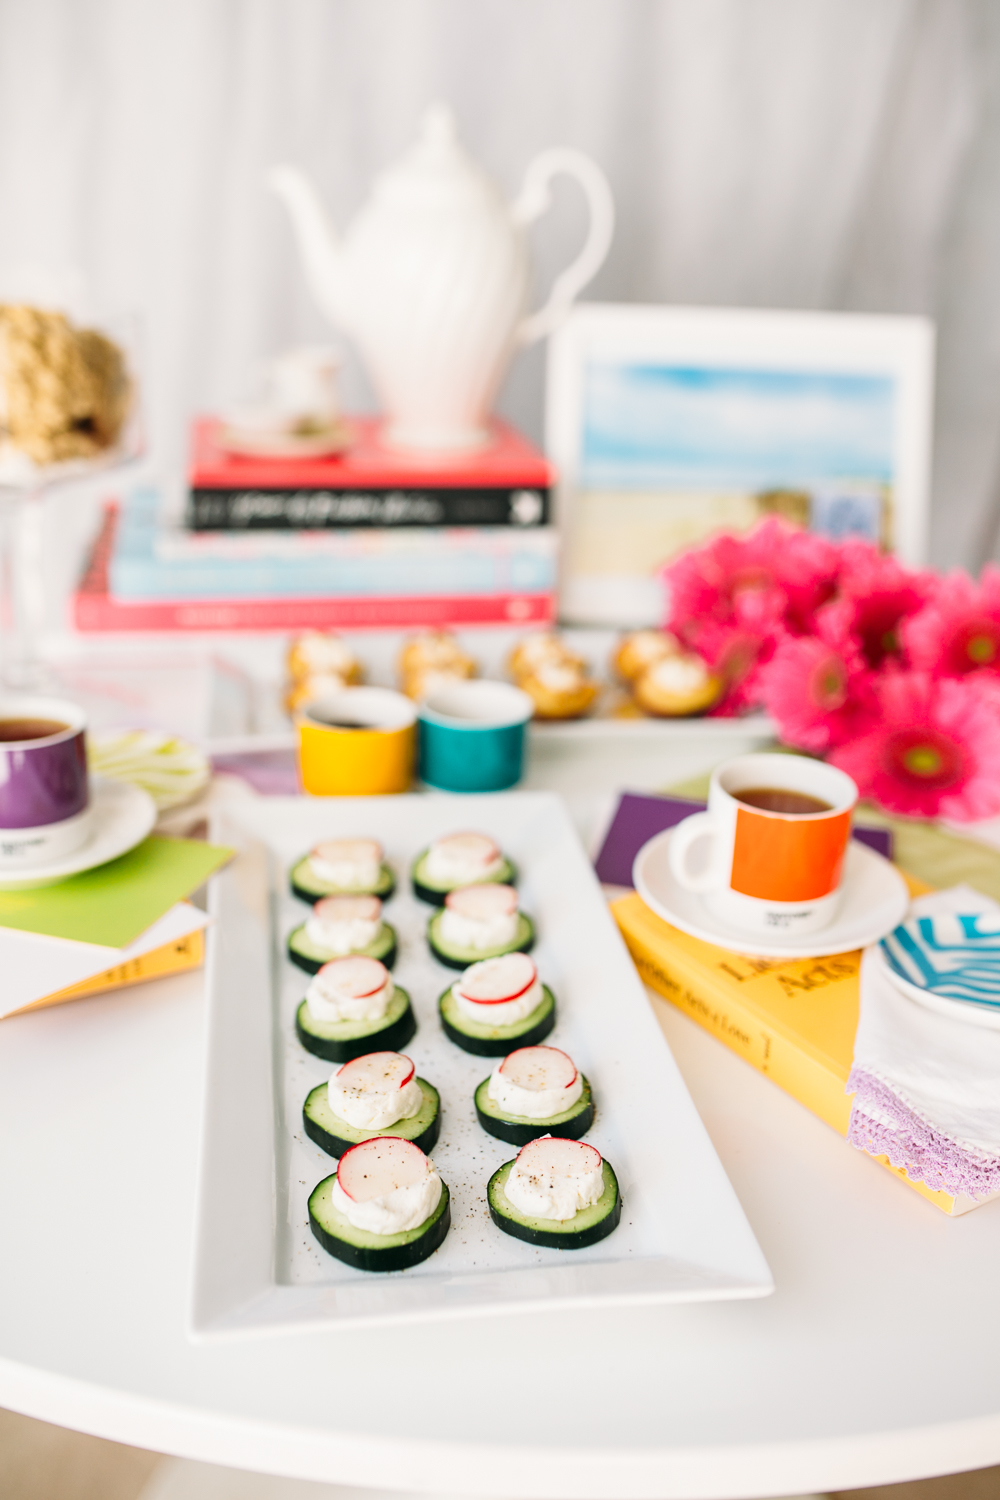 Modern Gluten-Free Tea mothers day concept story styling Doreen Creede art Aubrie Costello food Jen Capozzi photo Brae Howard IMG_6410.jpg